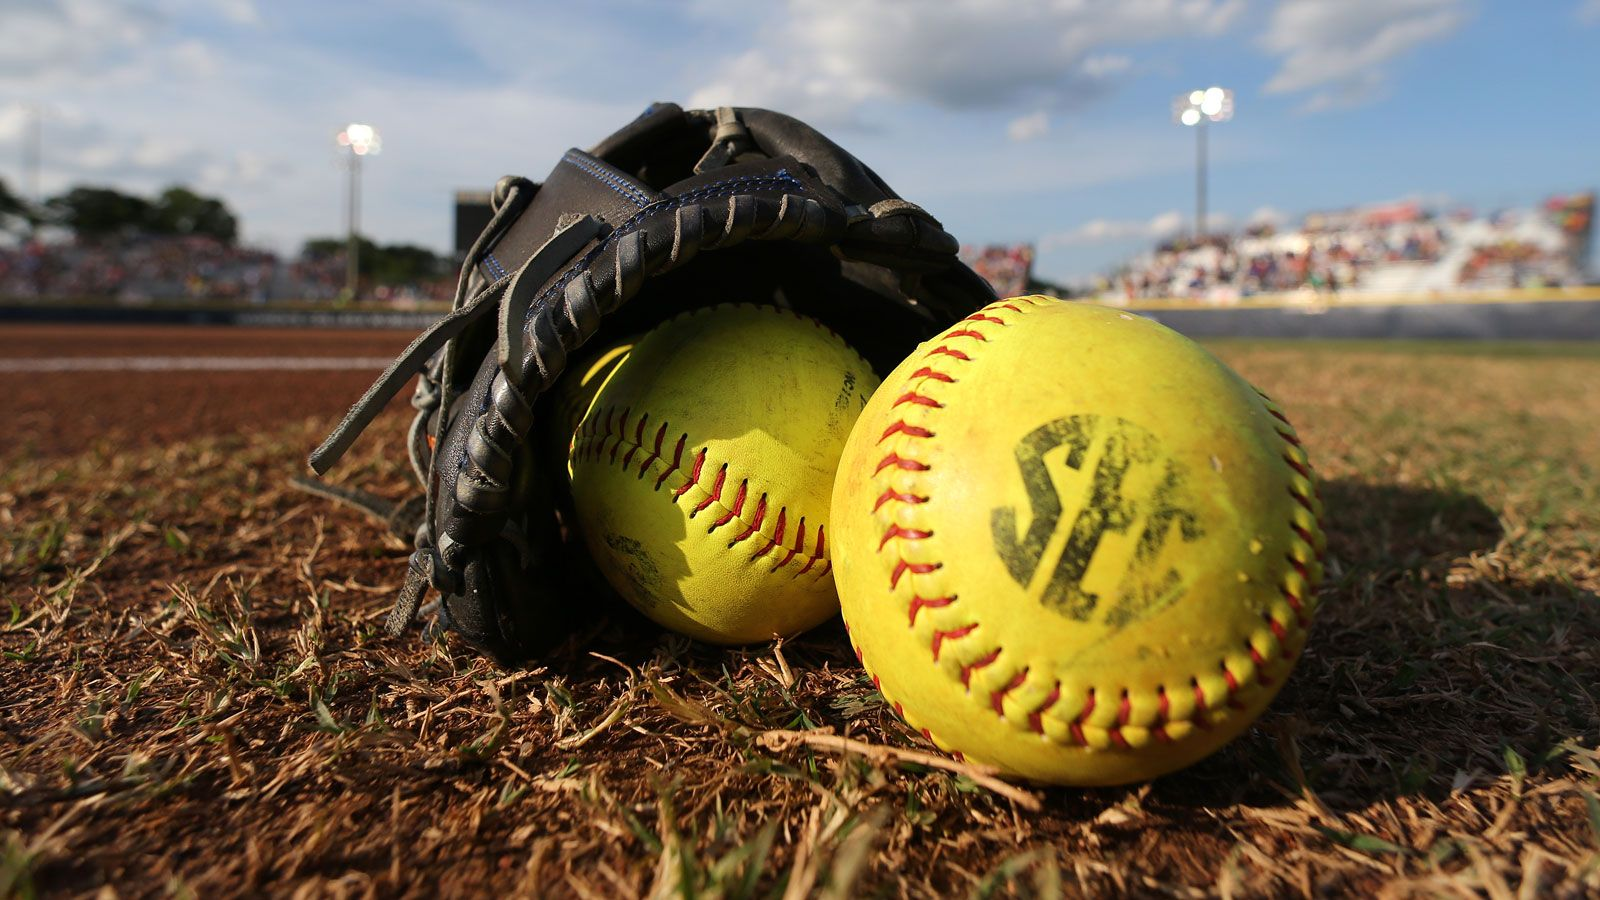 Sec Softball Players Named To National Teams